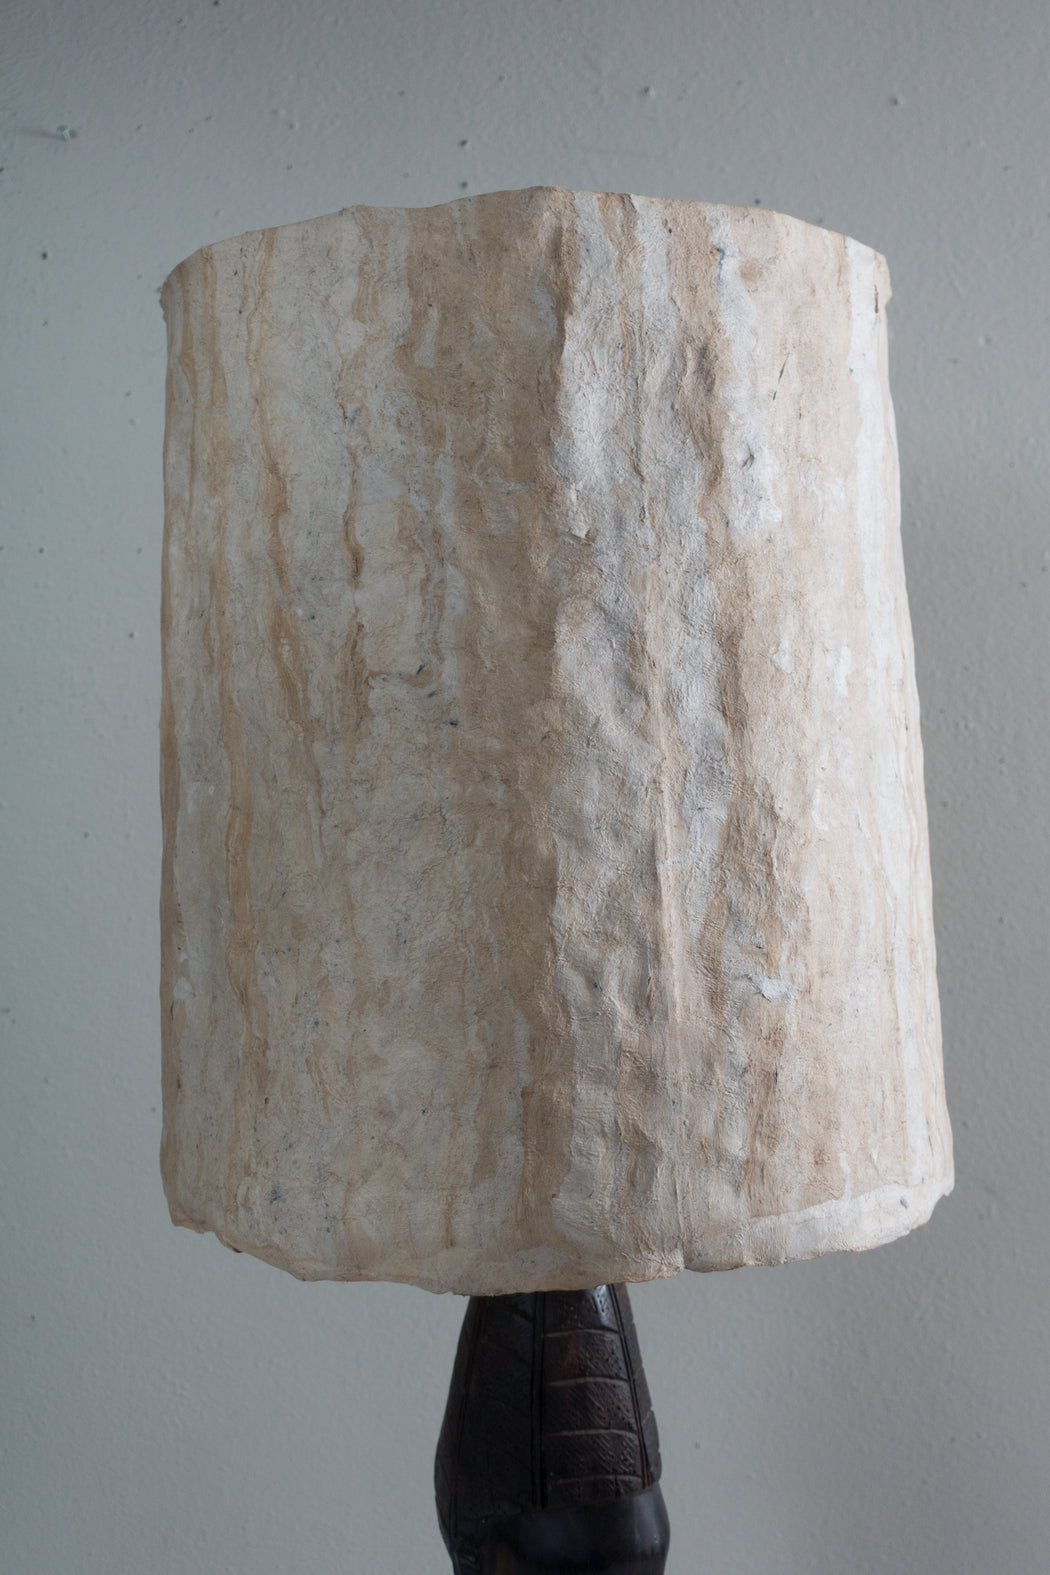 Vintage African Lamp with Rawhide Shade